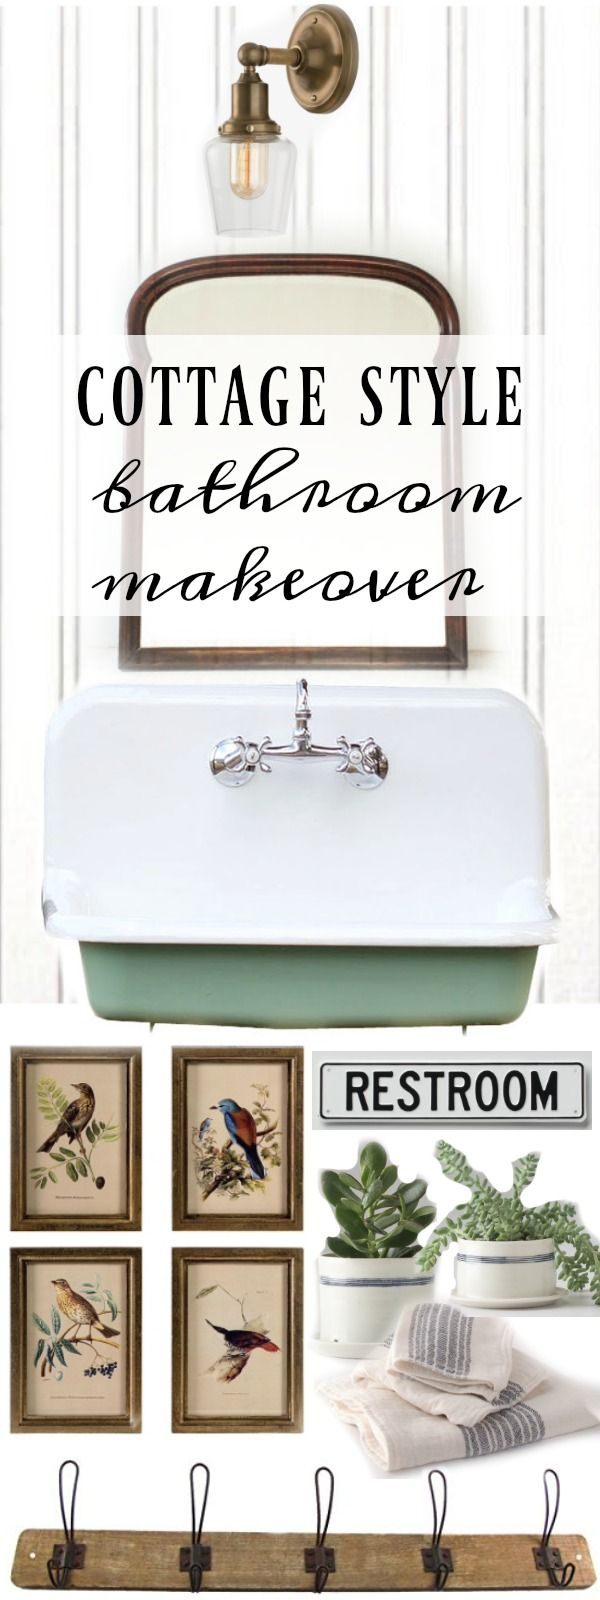 Best 20 Cottage Style Bathrooms Ideas On Pinterest Cottage Style Baths Cottage Style White